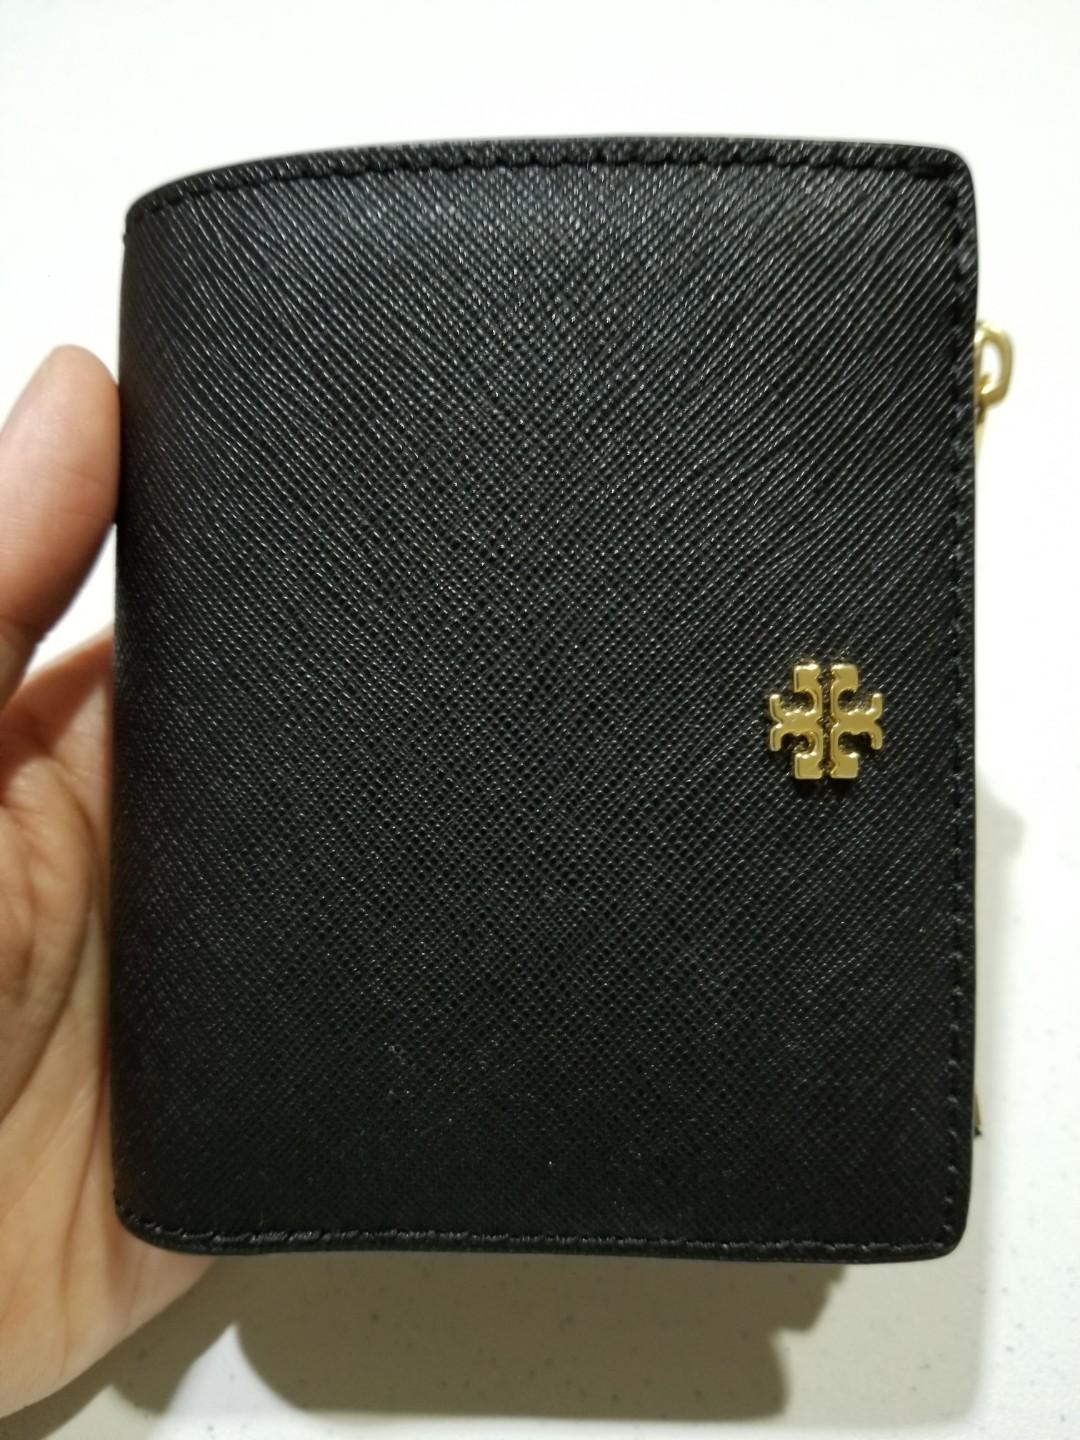 AUTHENTIC TORY BURCH EMERSON MINI WALLET LIKE NEW